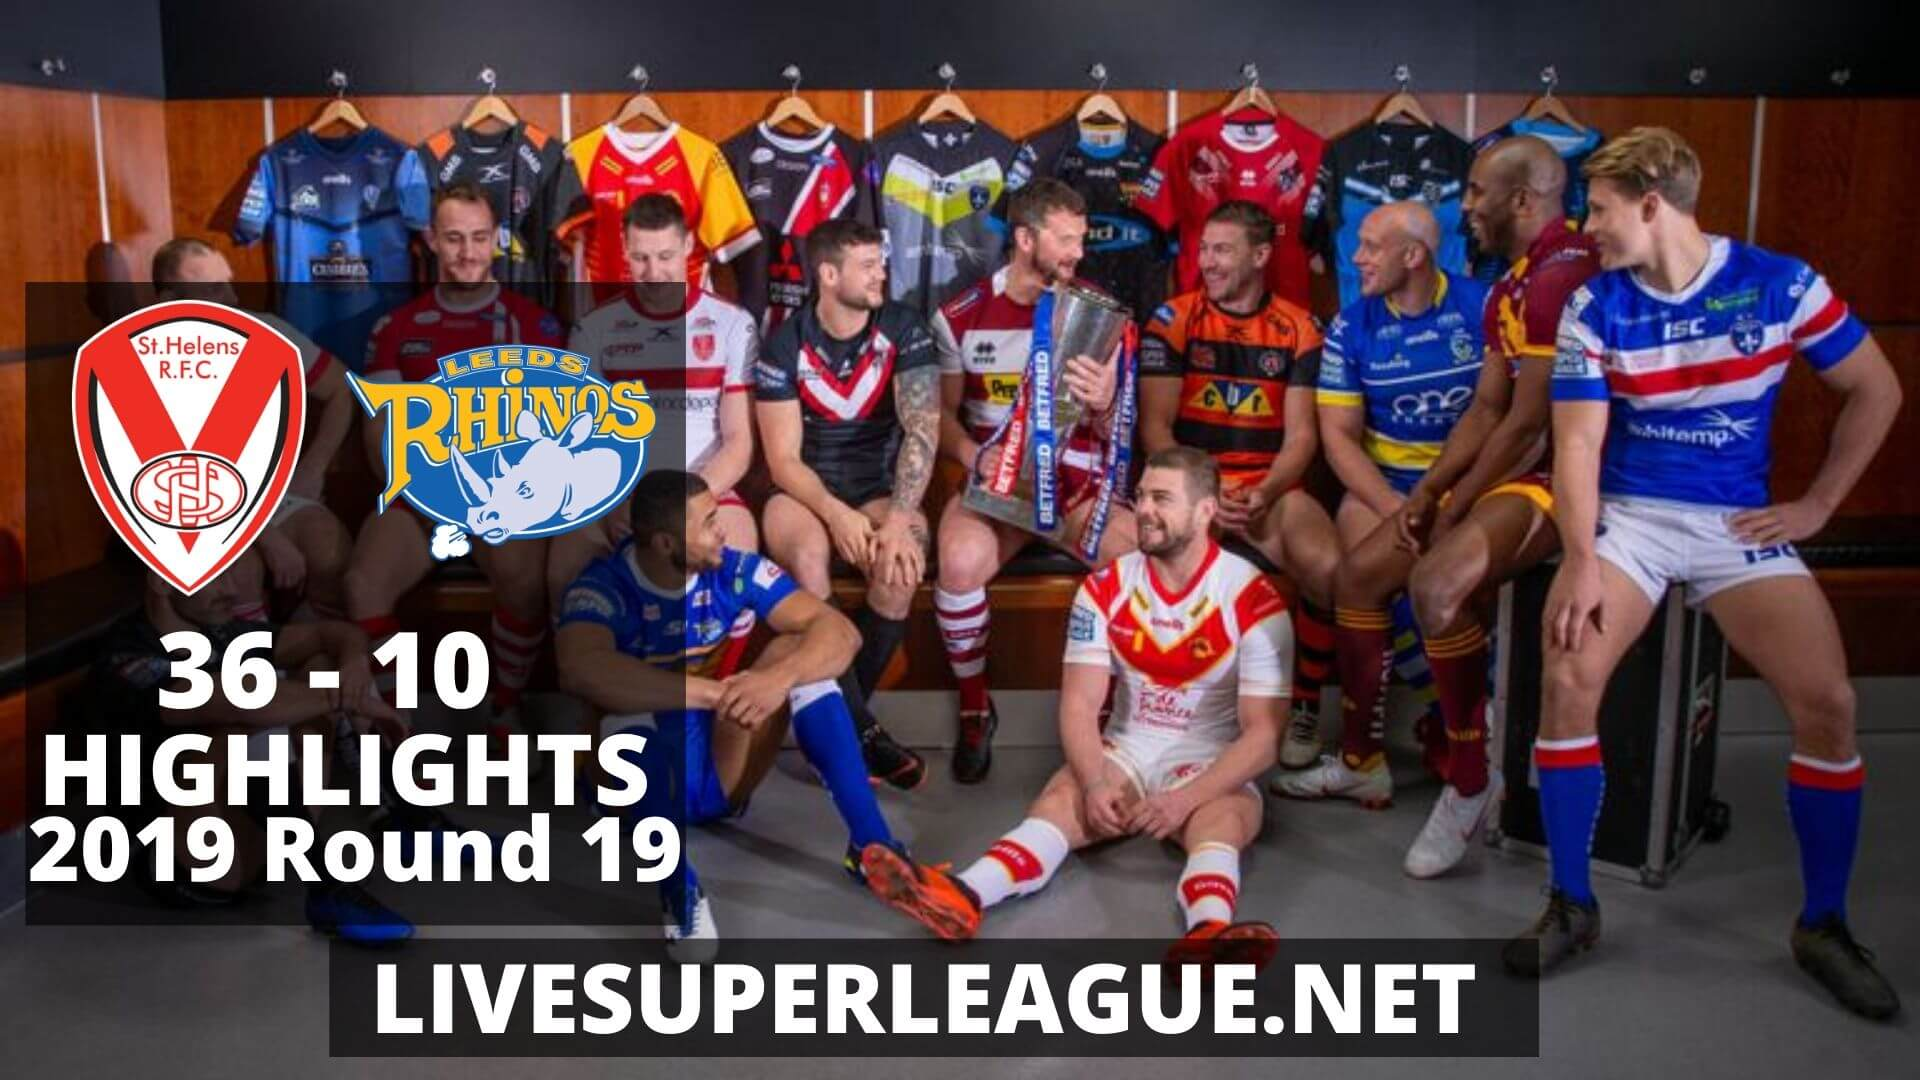 St Helens Vs Leeds Rhinos Highlights 2019 Round 19